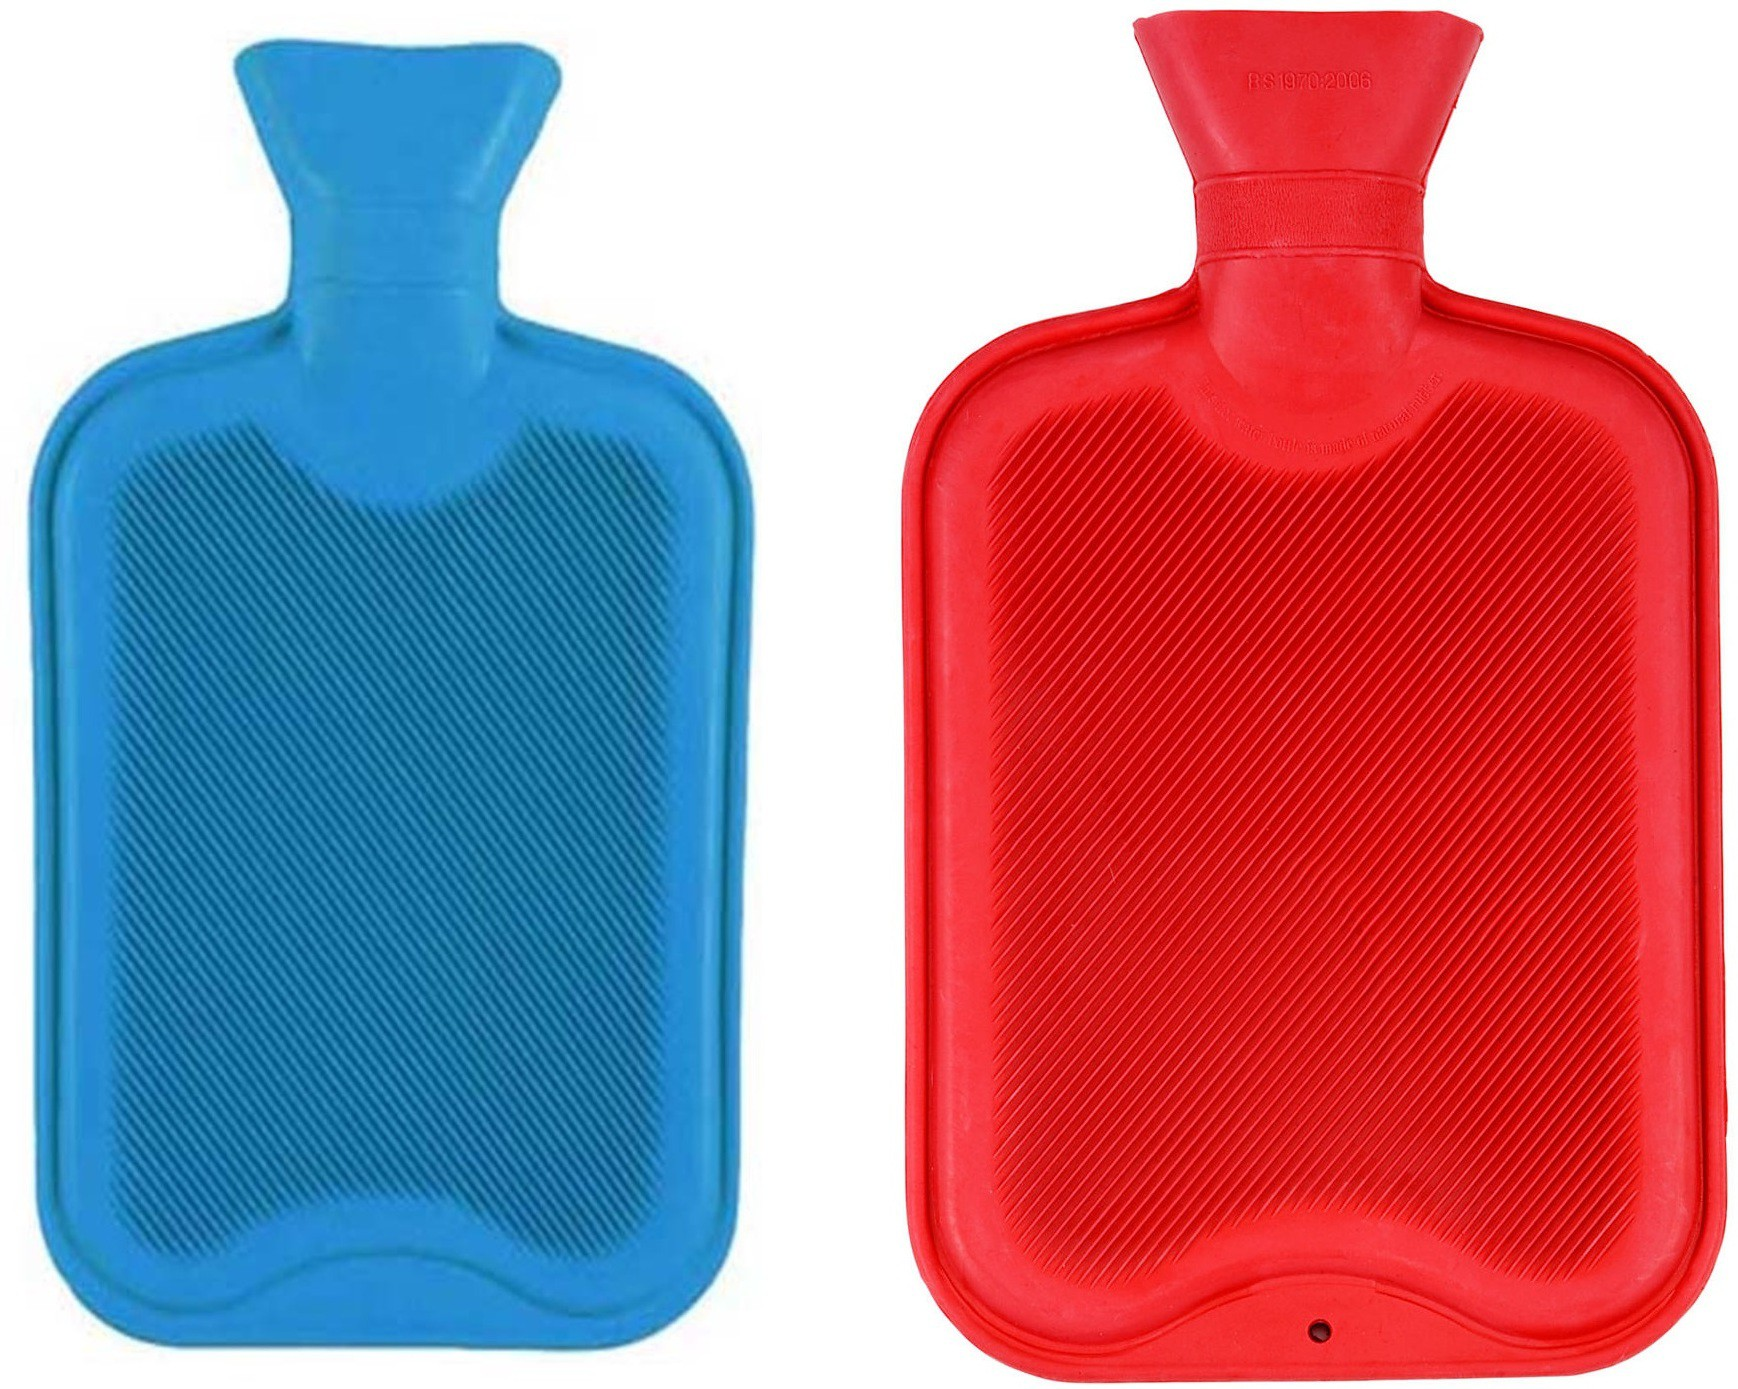 Sphiron Comfort Combos Hot Bag Non-electrical 1.5 L Hot Water Bag(Red, Blue)